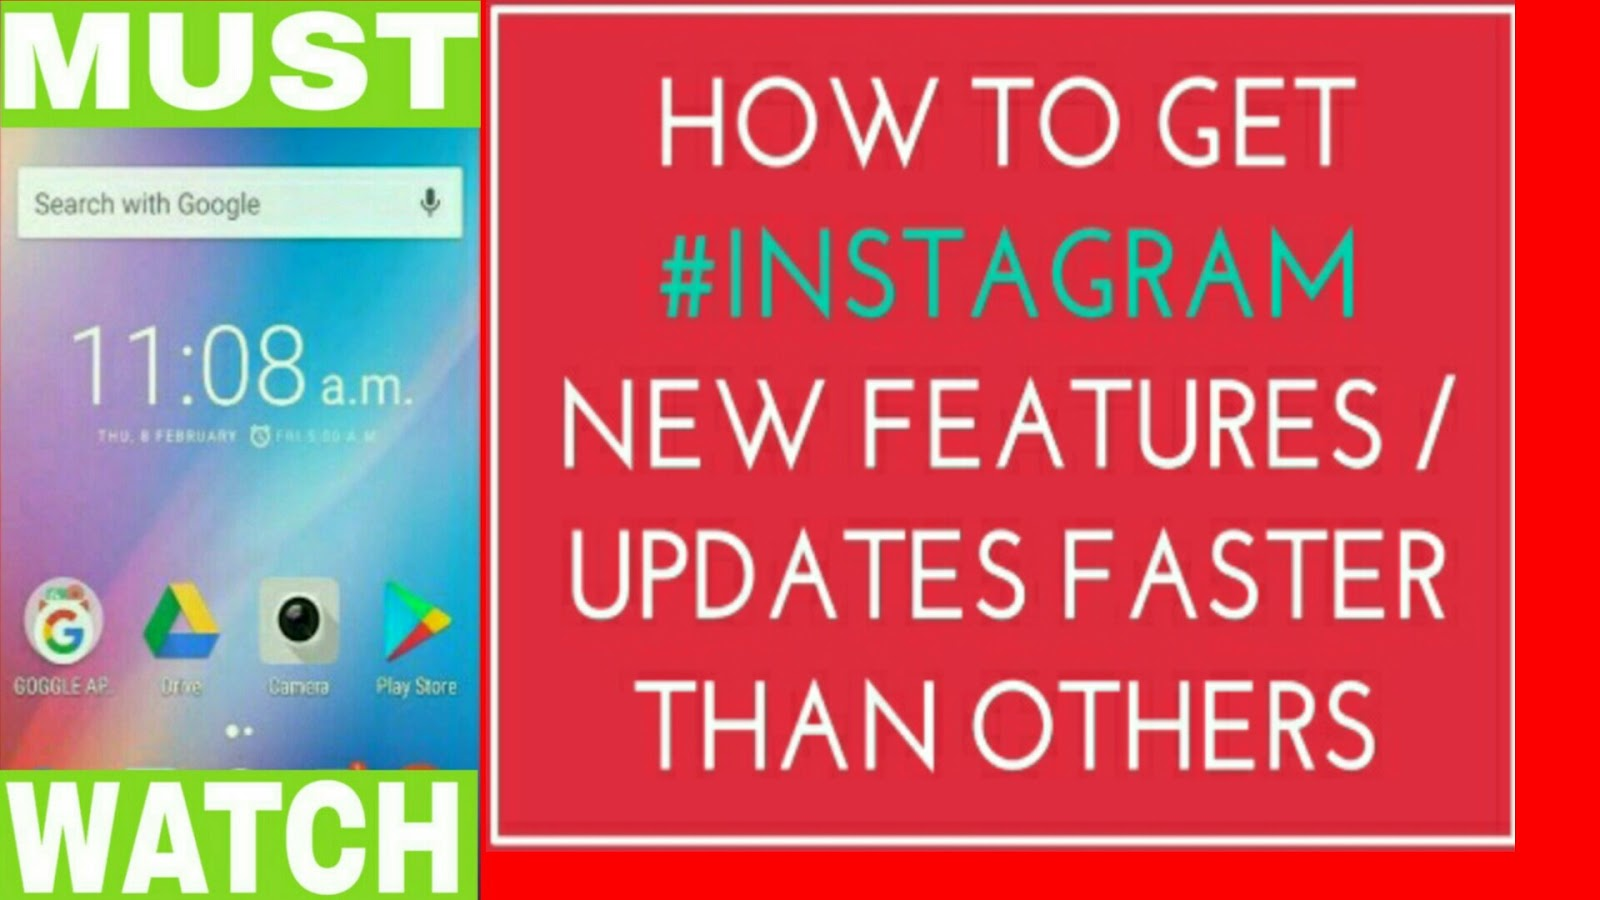 b02968f3f1dba HOW TO GET NEW INSTAGRAM UPDATES AND HOW TO GET LATEST INSTAGRAM FEATURES  FASTER THAN OTHER